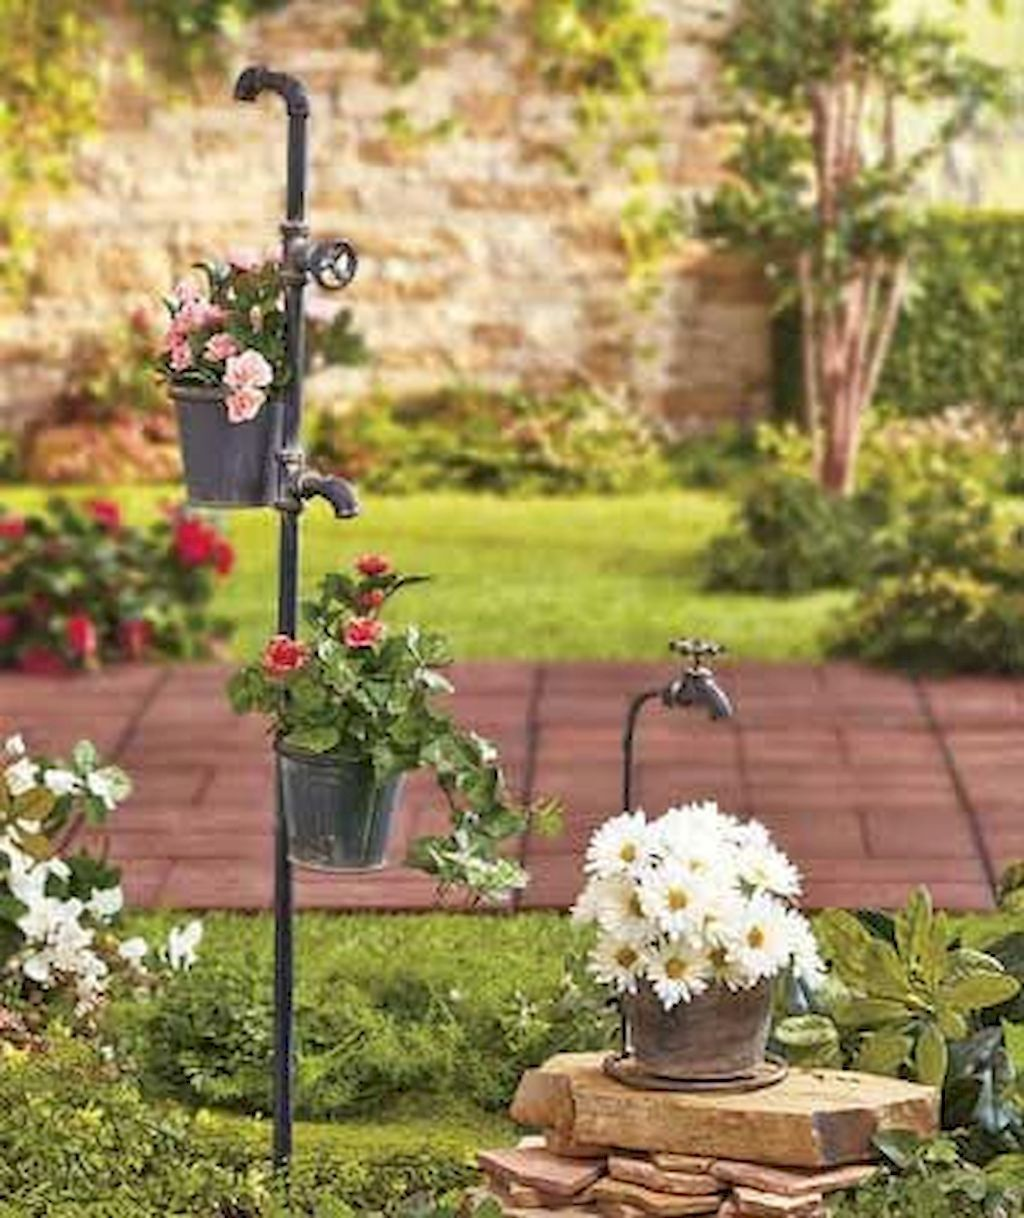 45 Totally Inspiring Decorative Garden Faucet Ideas With Images